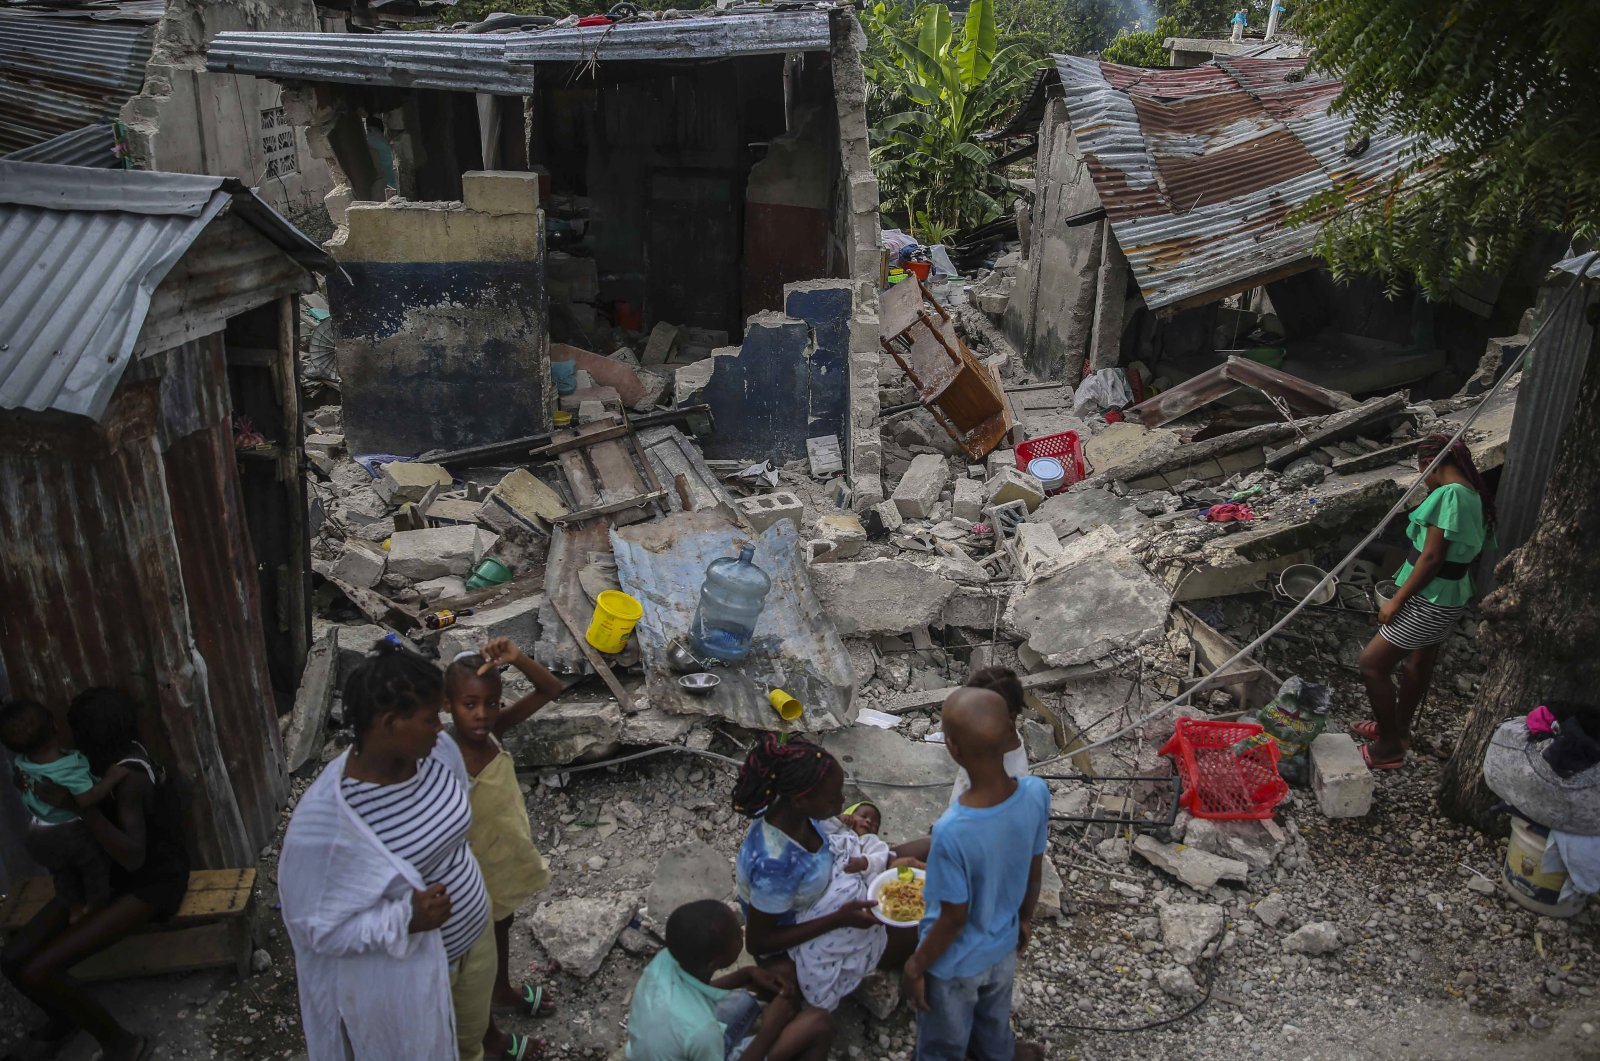 A family eats breakfast in front of homes destroyed by a 7.2 magnitude earthquake in Les Cayes, Haiti, Sunday, Aug. 15, 2021. (AP Photo)